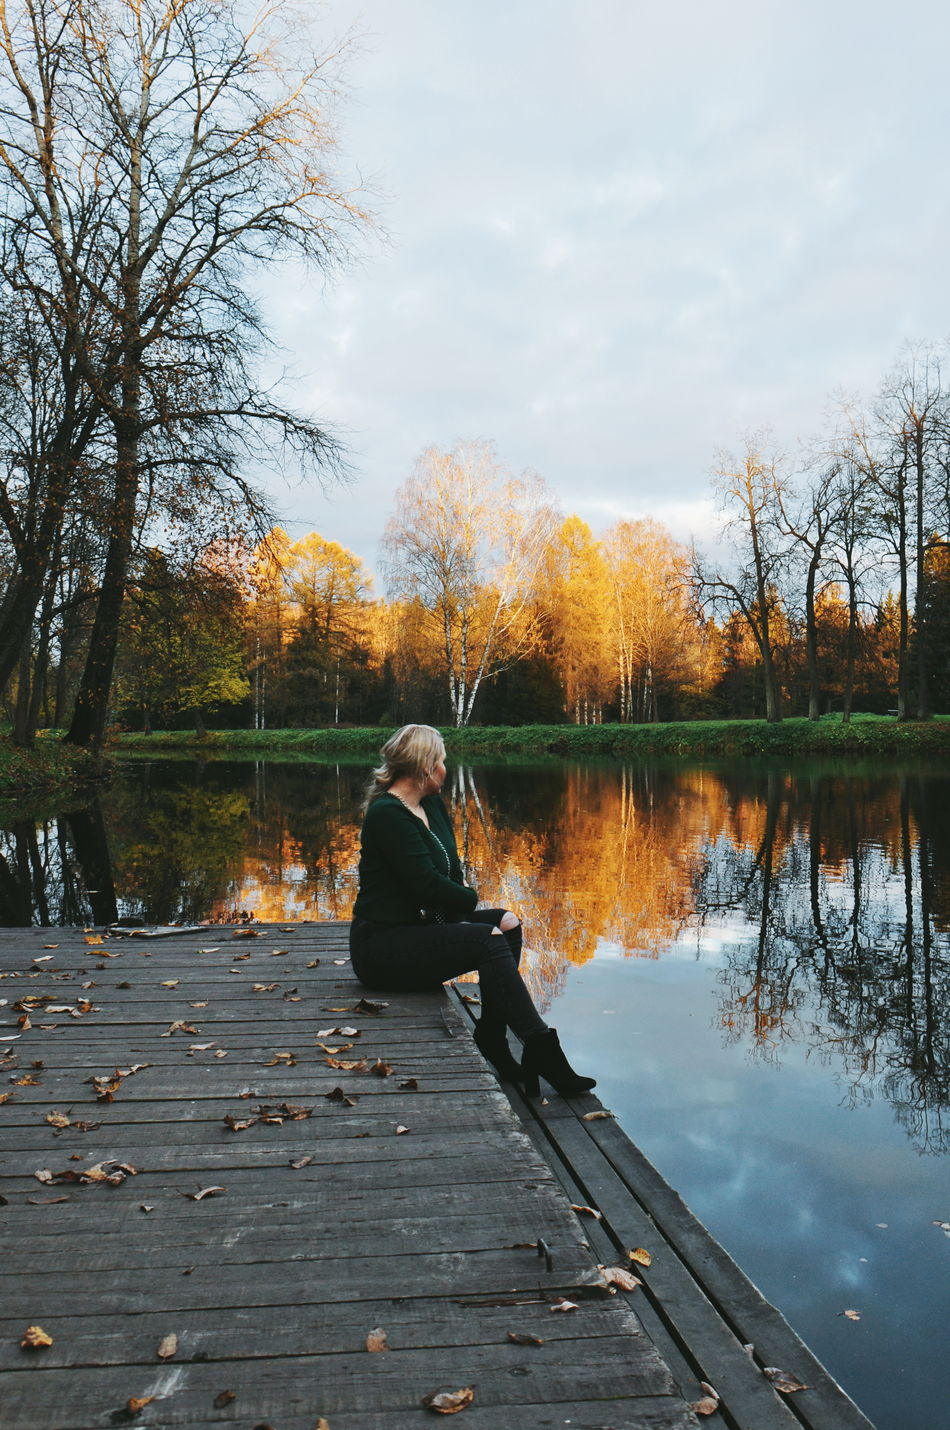 Autumn Autumn Autumn Colors Beauty In Nature Change Colorful Colors Day Girl Horizontal Lake Model Nature Nature Nature_collection Naturelovers One Person Outdoors People Reflection Russiannature Sky The Week Of Eyeem Tree Water